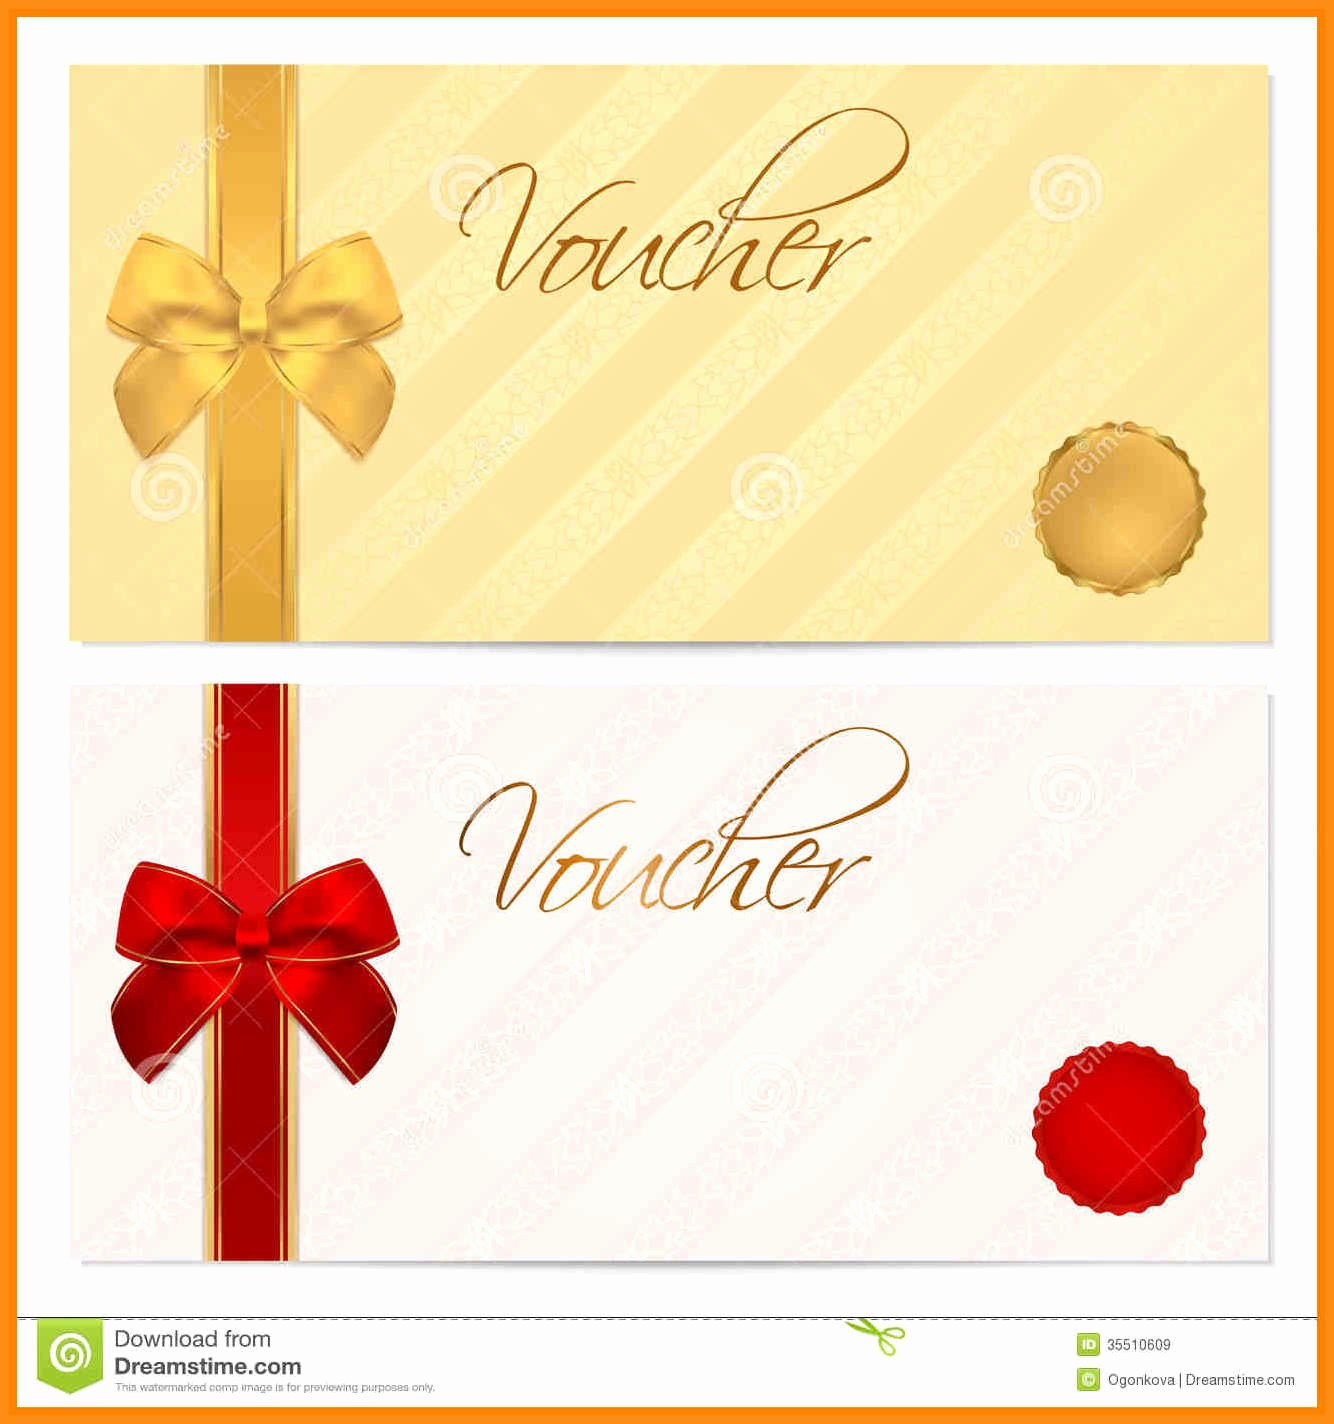 Printable Gift Coupon Templates Free Awesome 11 Voucher Template